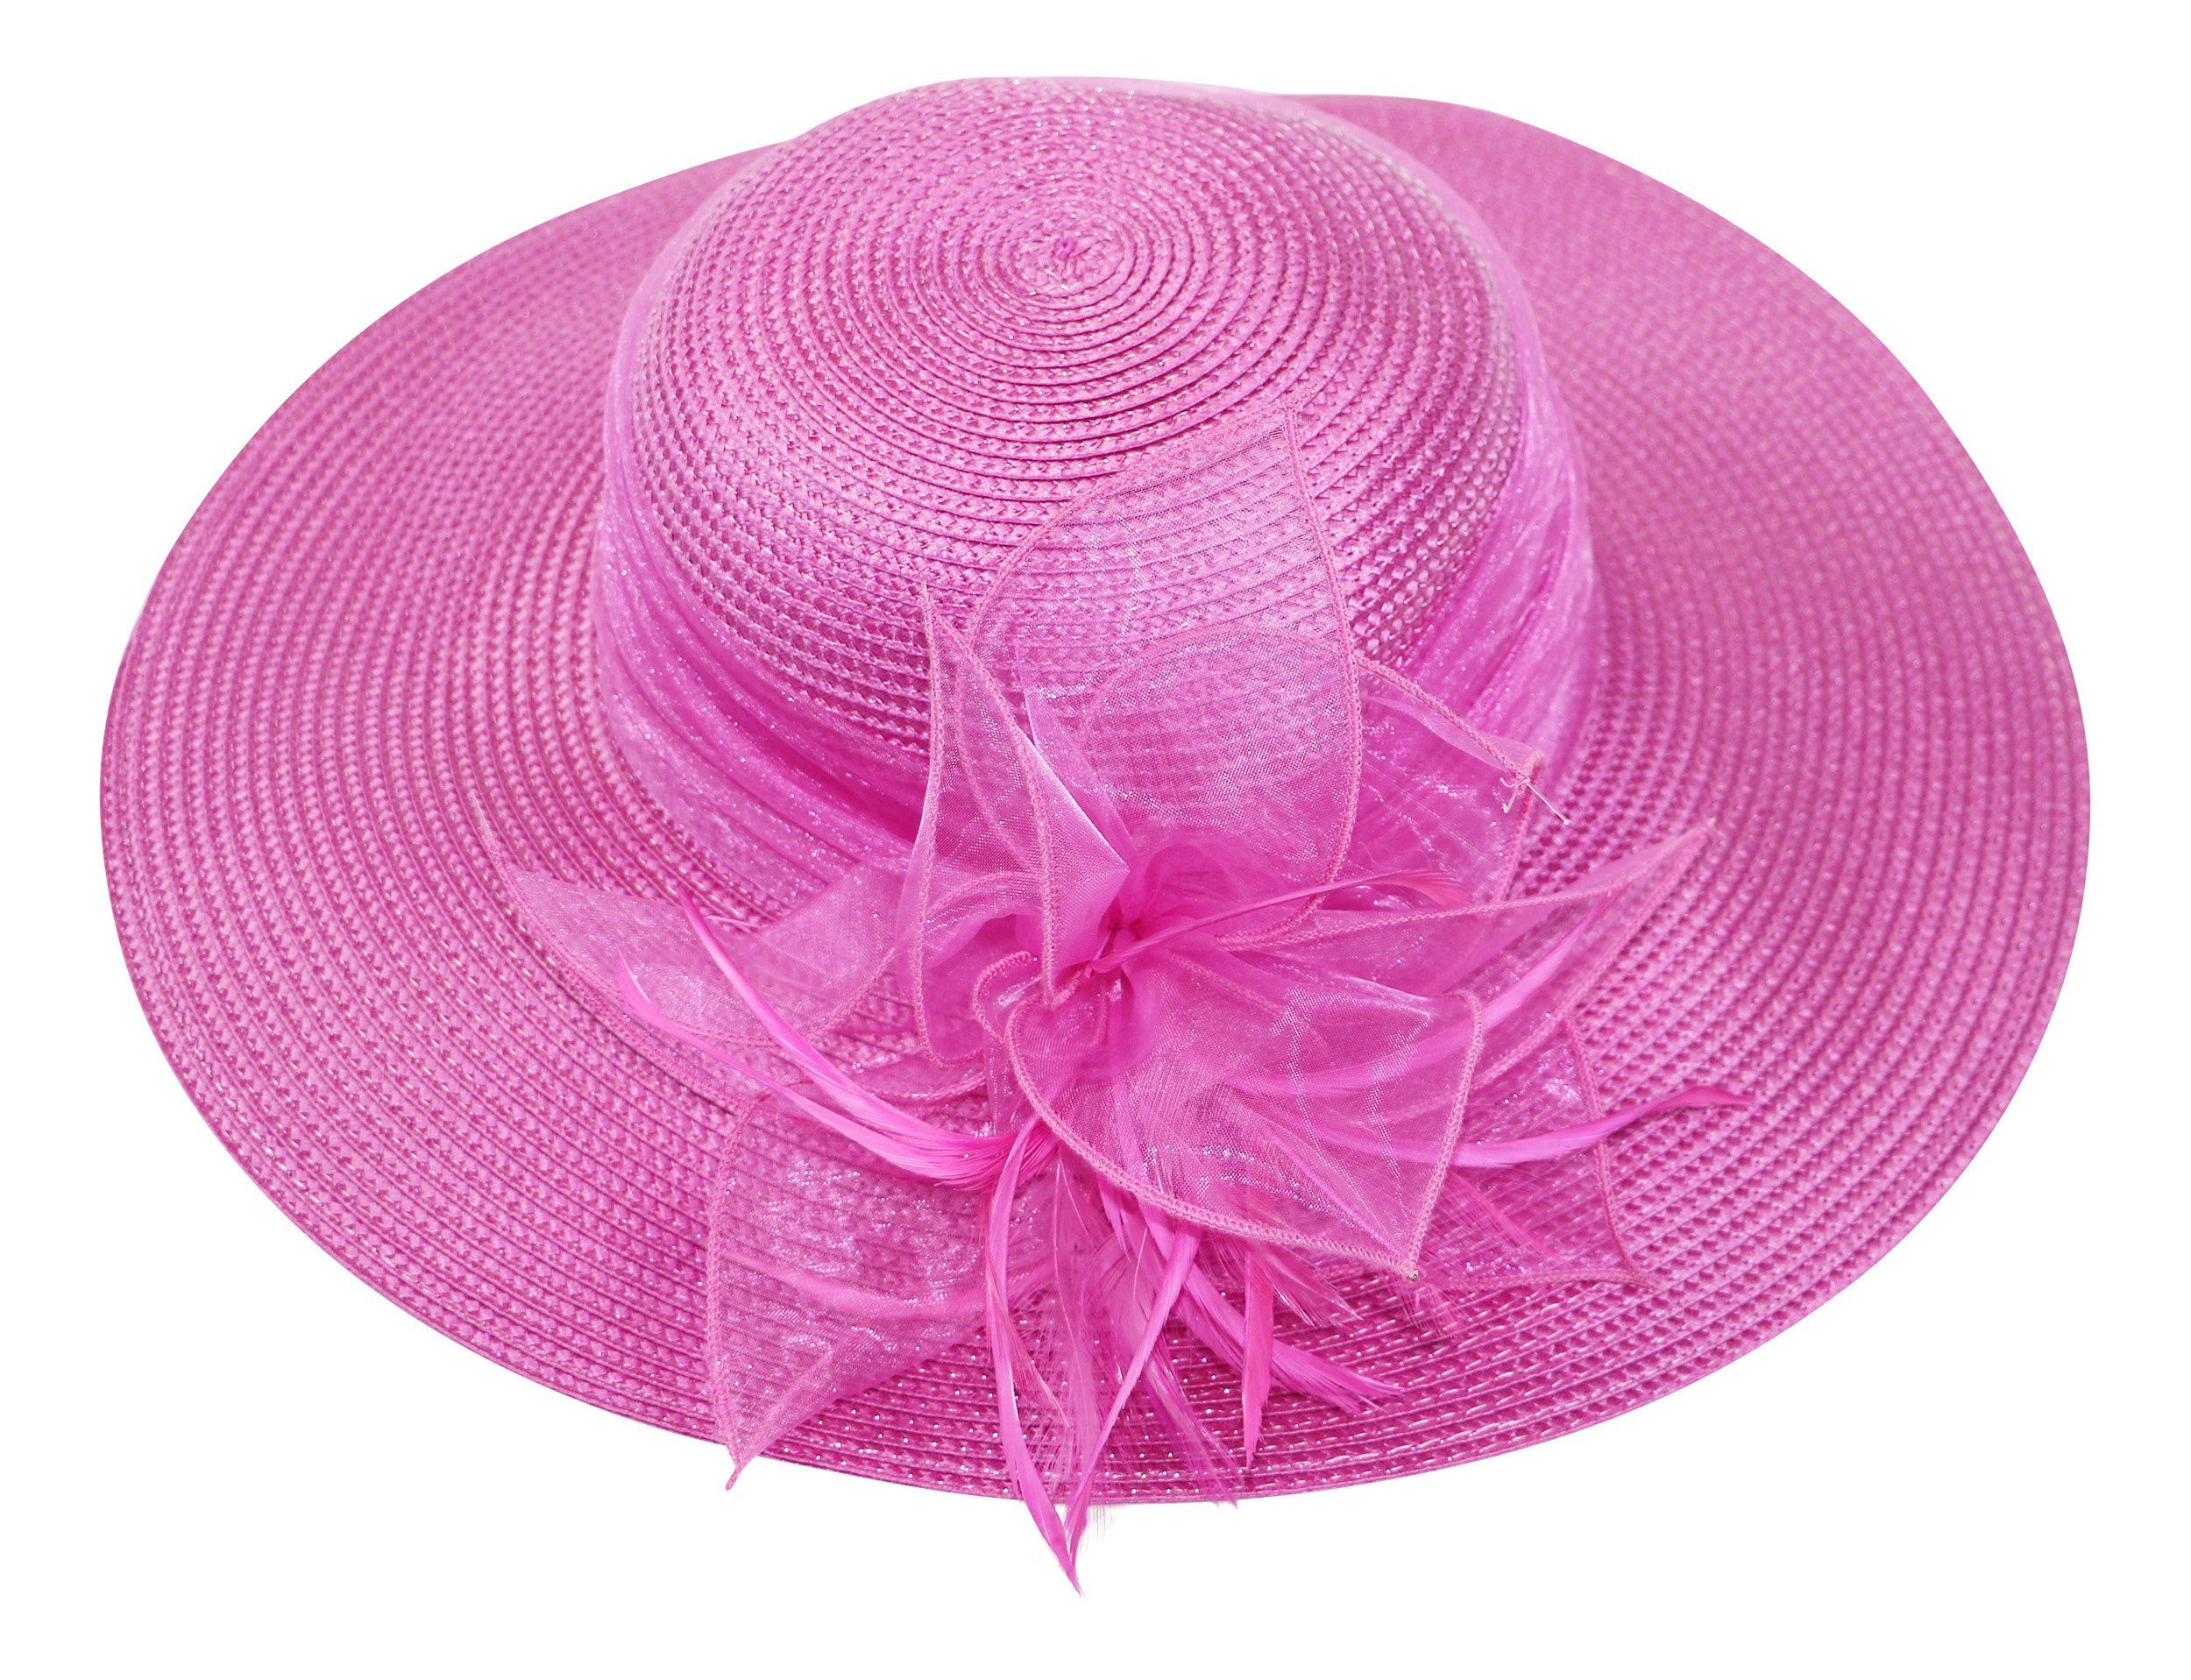 Fine Millinery by August Hat Co Feather Accented Downbrim (Fuchsia, One Size) by Fine Millinery by August Hat Co (Image #1)